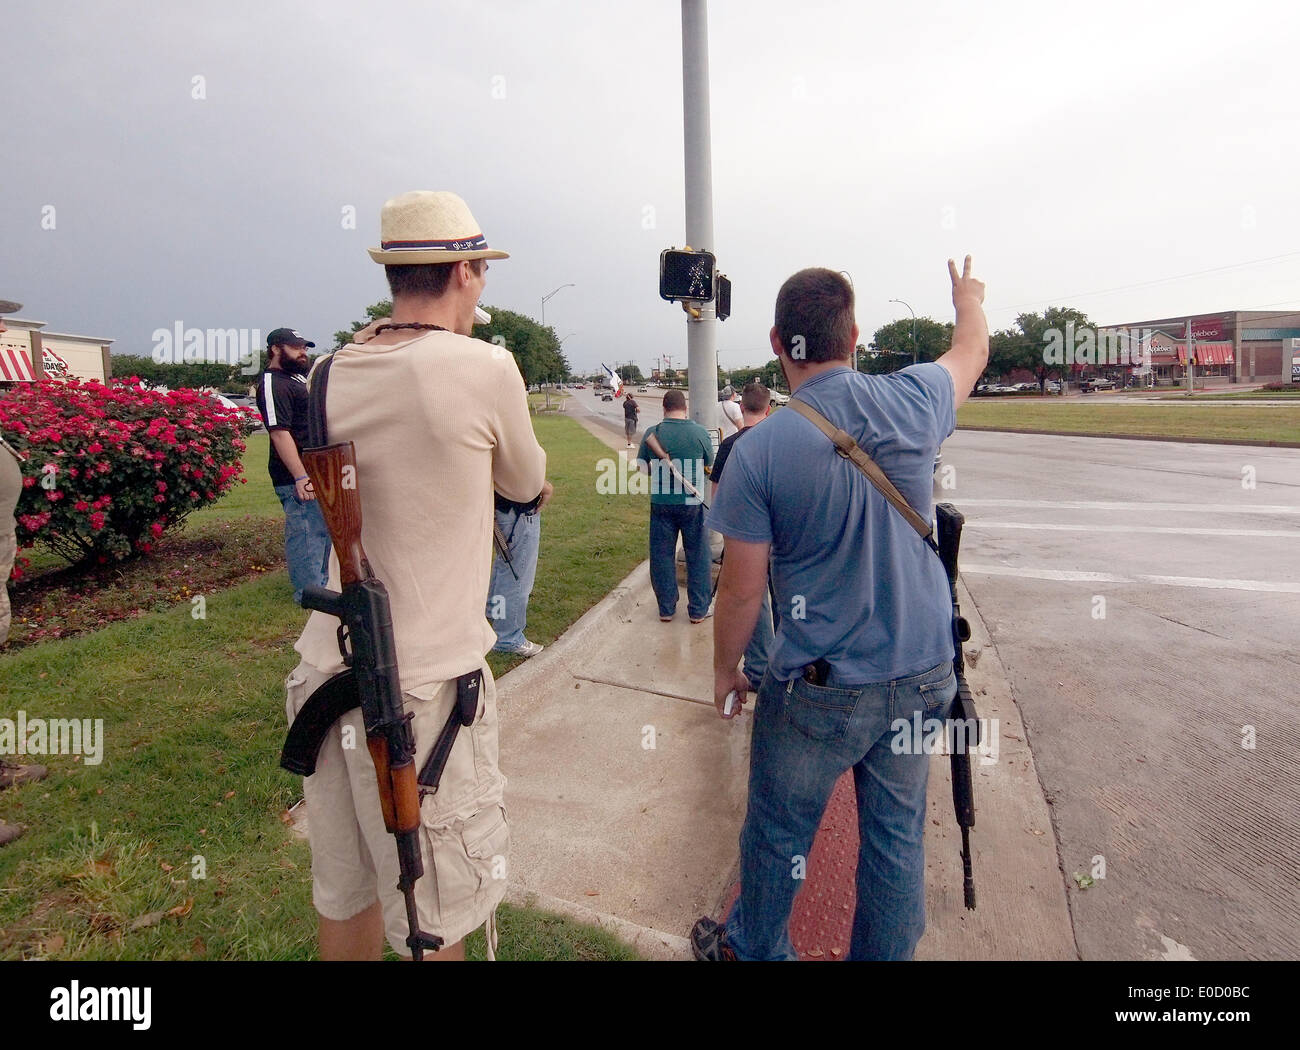 Group of gun owners see laws preventing them from carrying weapons as aright. Protest in 1016 along the streets of Arlington, Texas, they want people to see the guns, carry big rifles on the street and try to enter local fast-food stores in the area. When they enter all the employees run to the back and hide. Formed by guns-rights activist Kory Watkins. - Stock Image